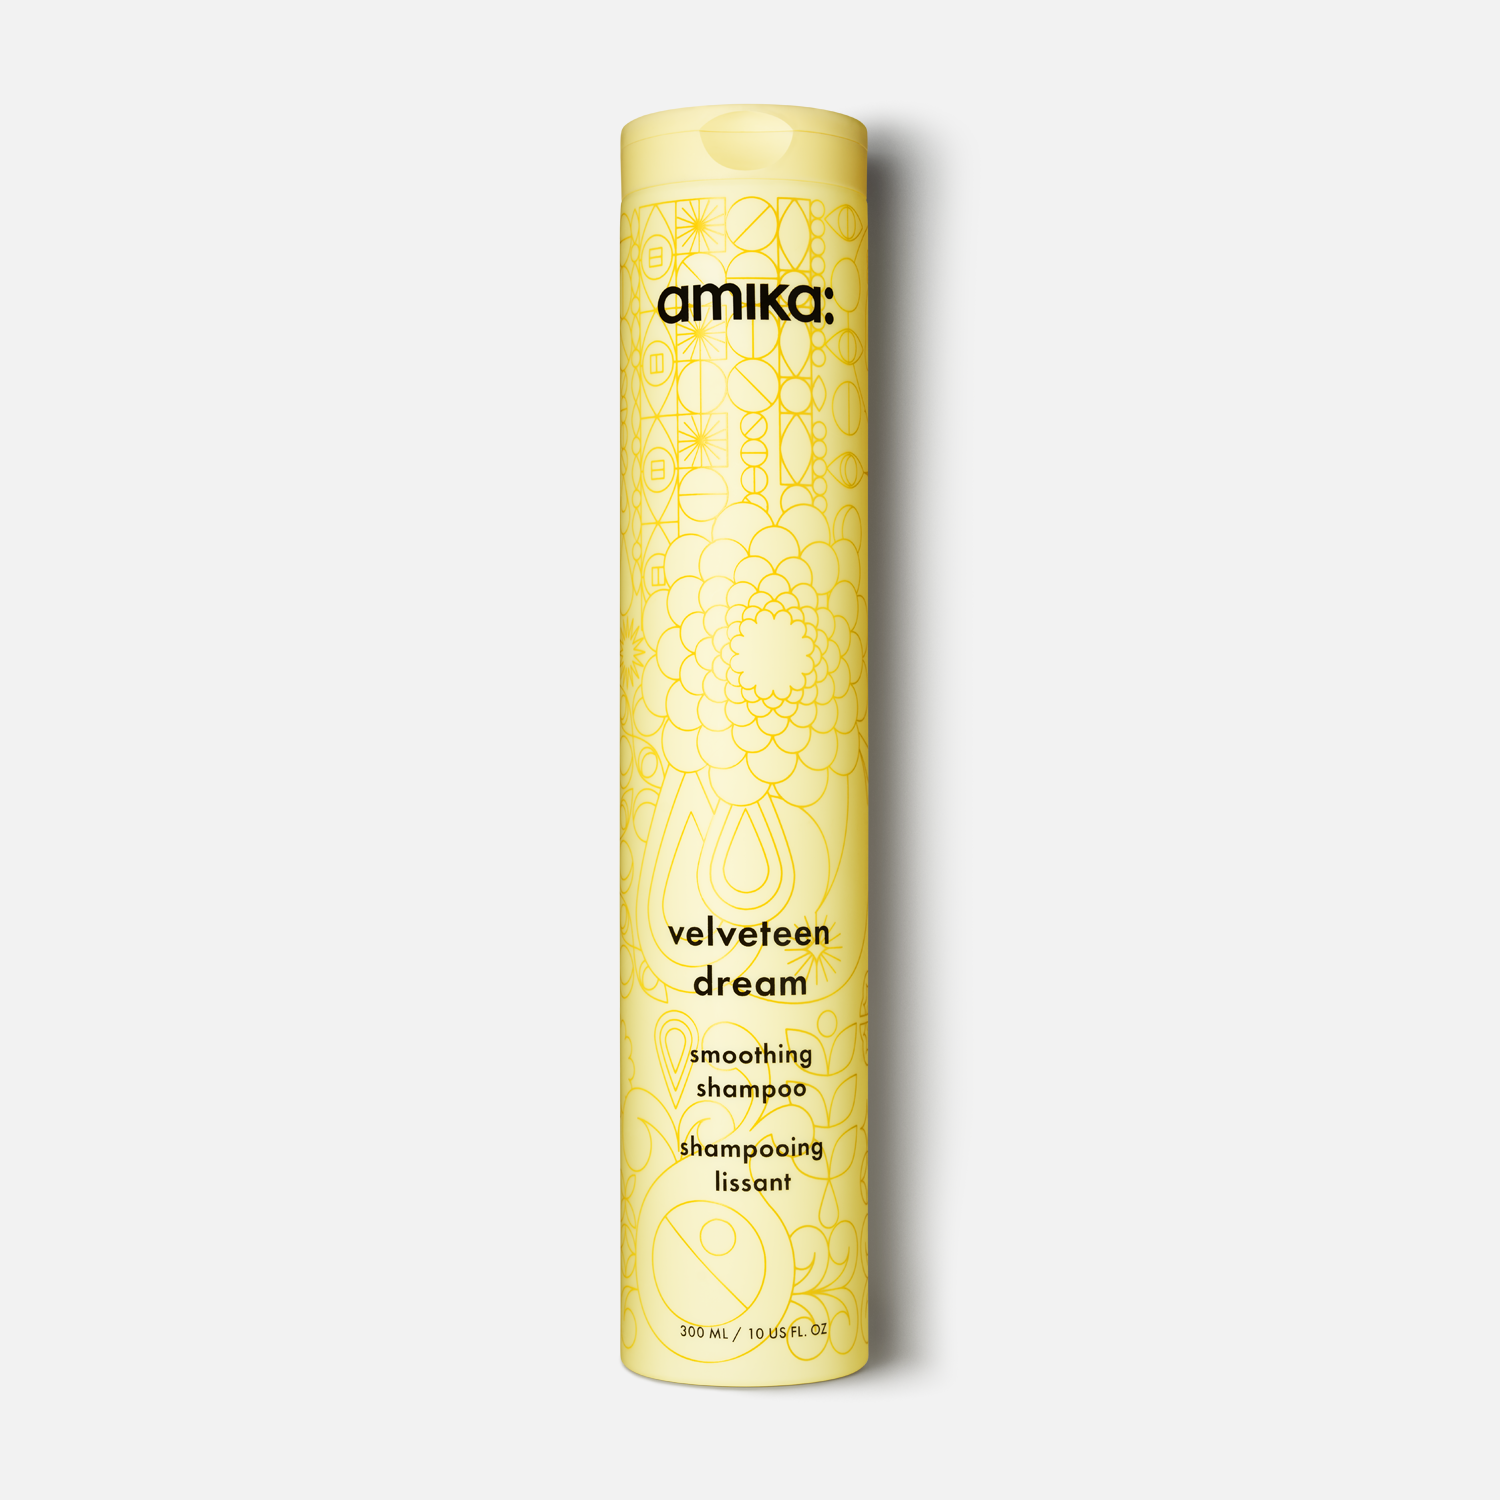 Amika's Velveteen Dream Shampoo: $24, does not way hair down but helps prevent frizz and flyaways.